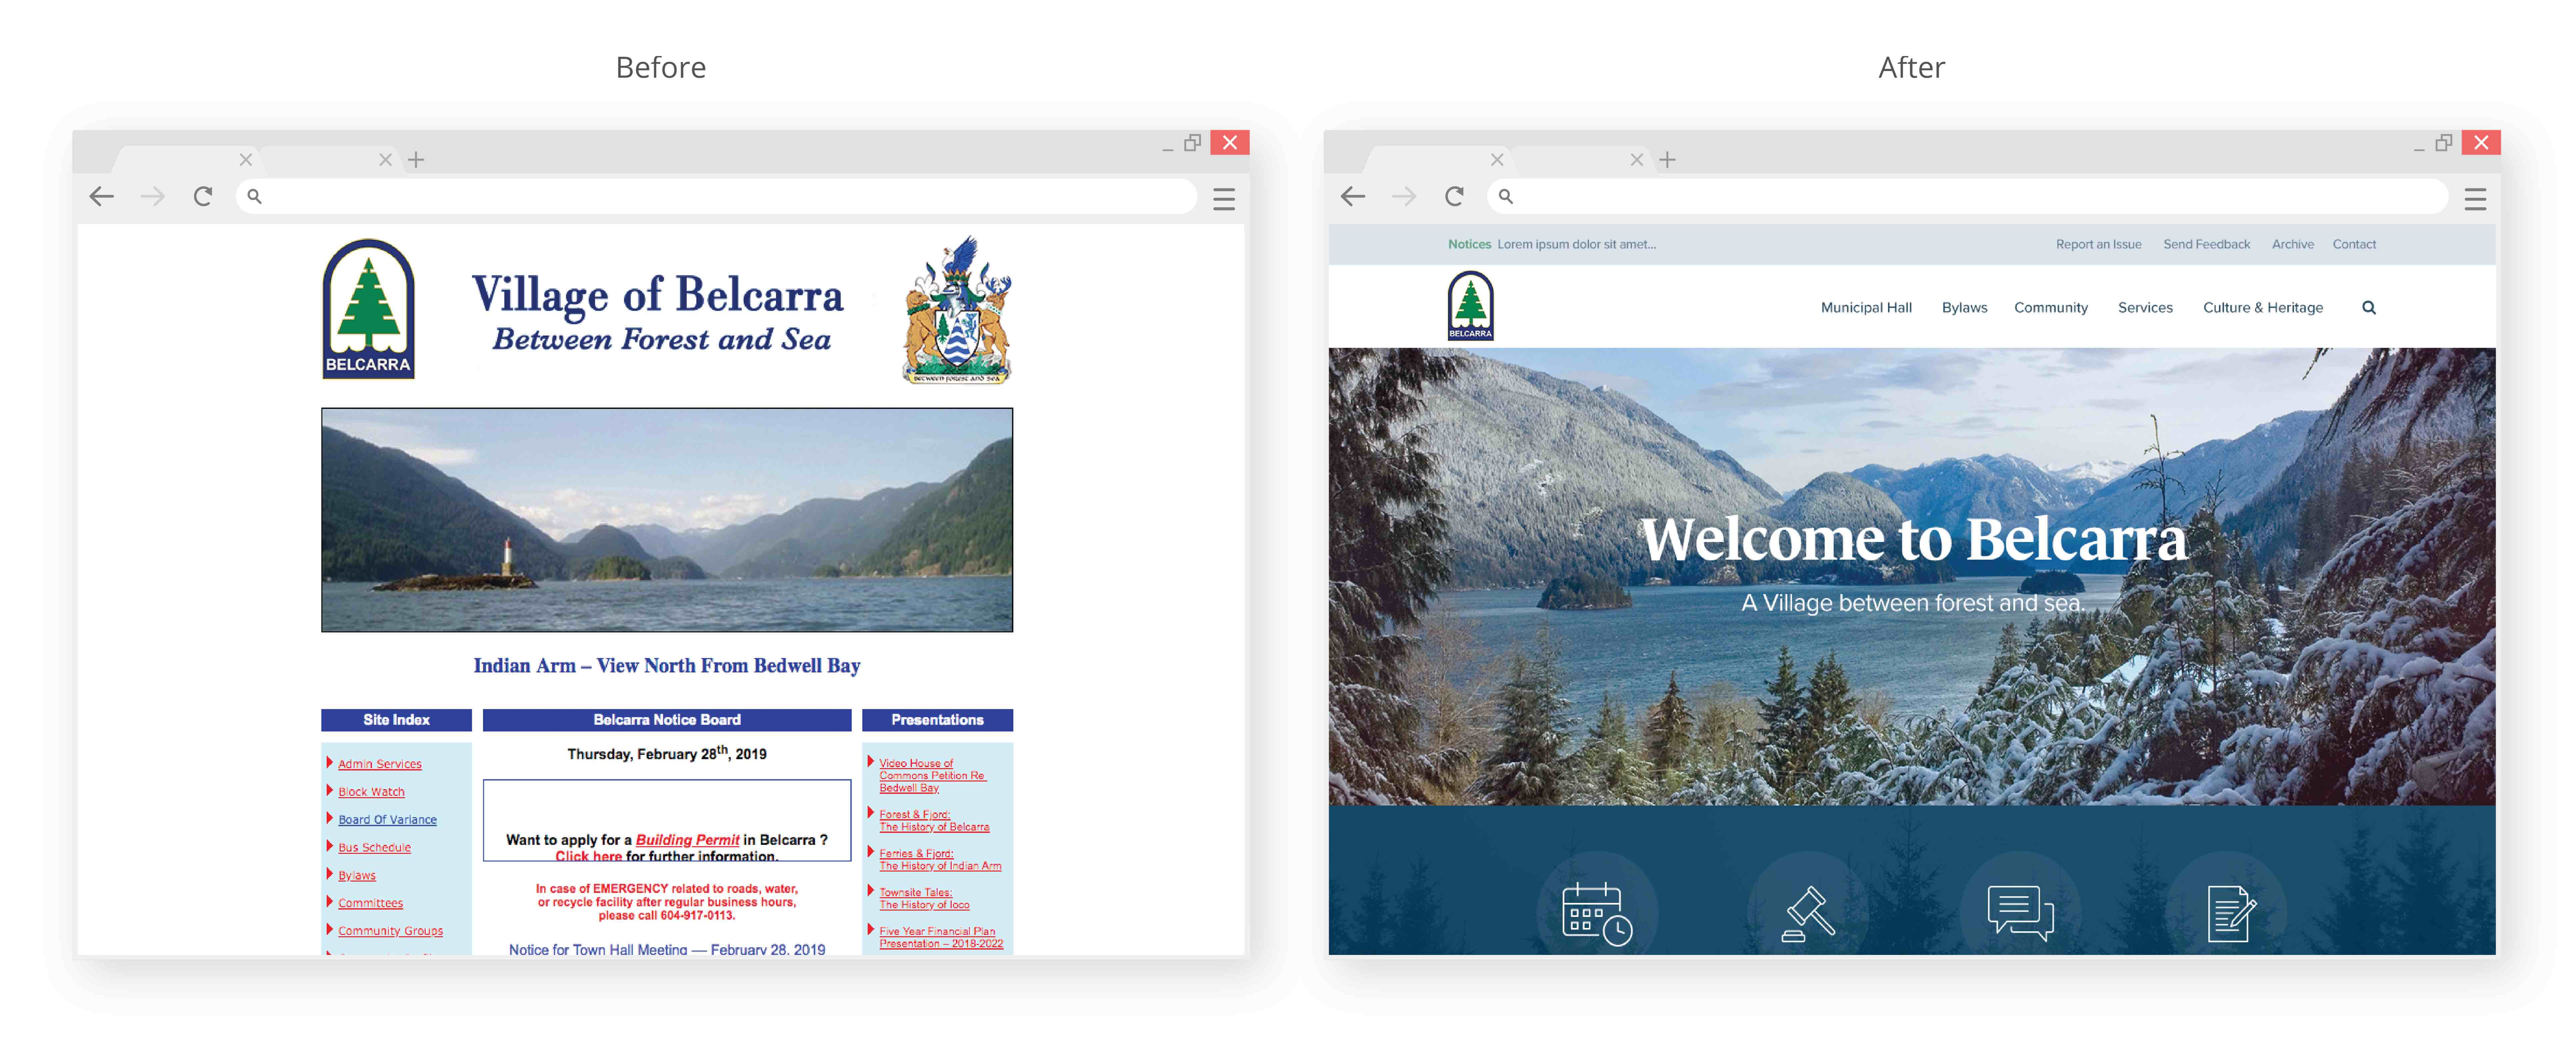 Village of Belcarra municipal website before and after